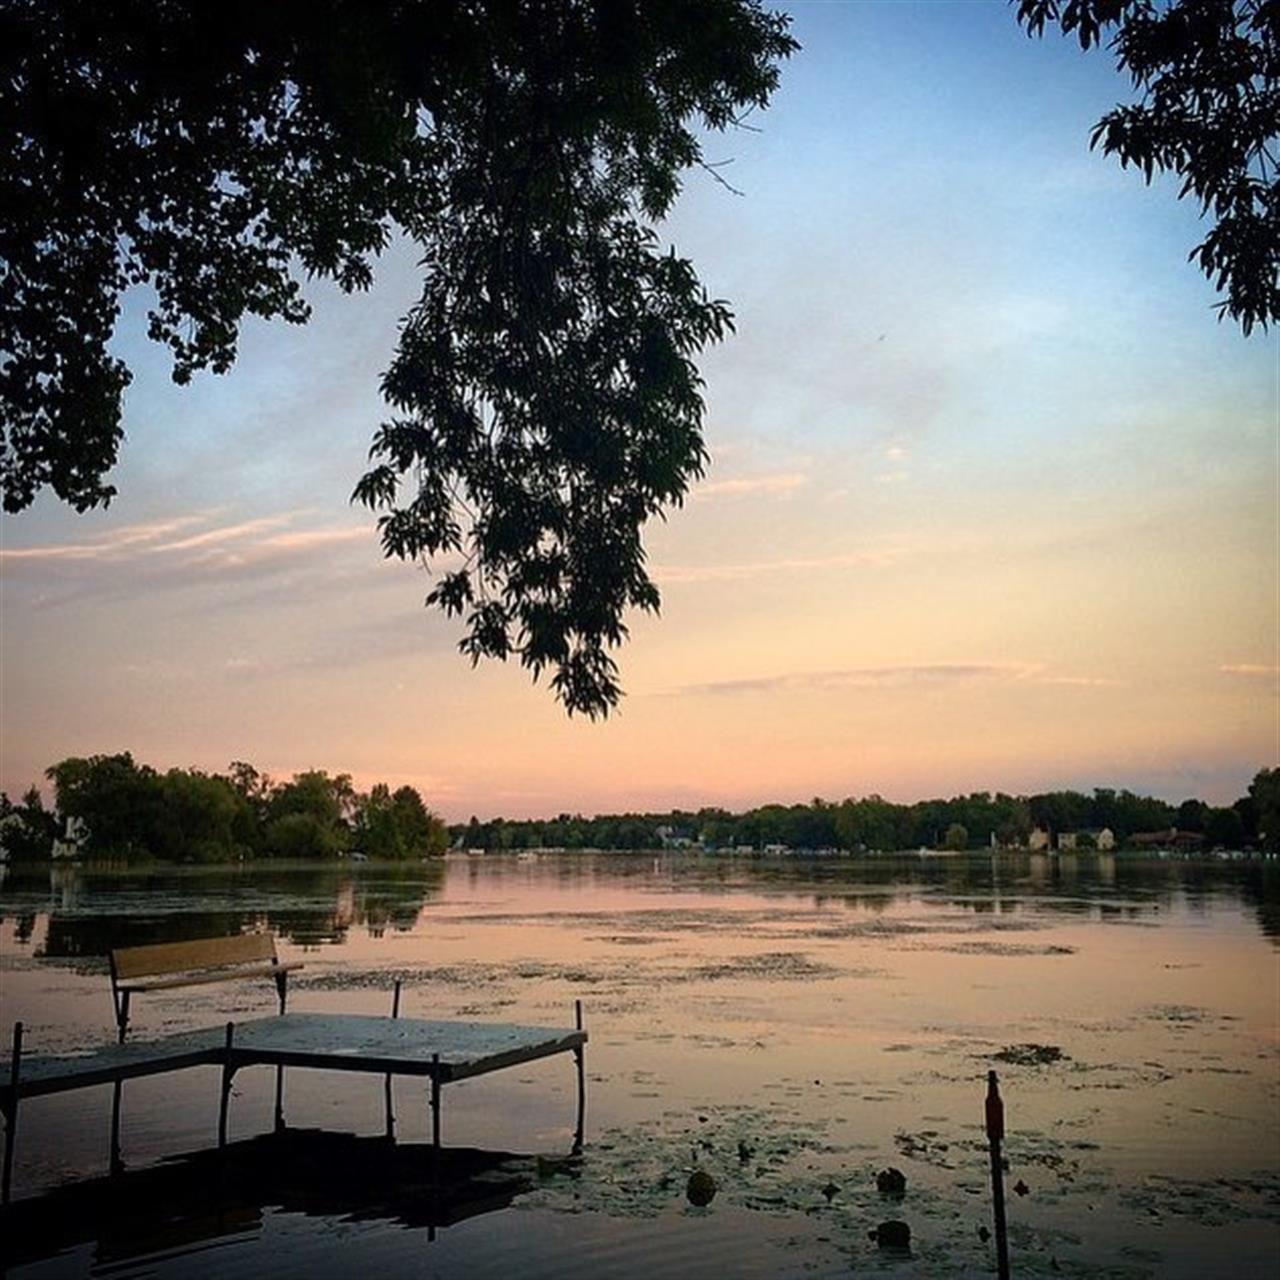 A serene moment on Crystal Lake, the city's namesake lake. Just a train ride outside the busy city of Chicago, Crystal Lake offers a scenic getaway for canoeing, biking hiking and more. #crystallake  #chicagosuburbs #wisconsinborder #summernights #leadingrelocal #chicagorealestate #realestate #relocation #chicagorelocation #bairdandwarner